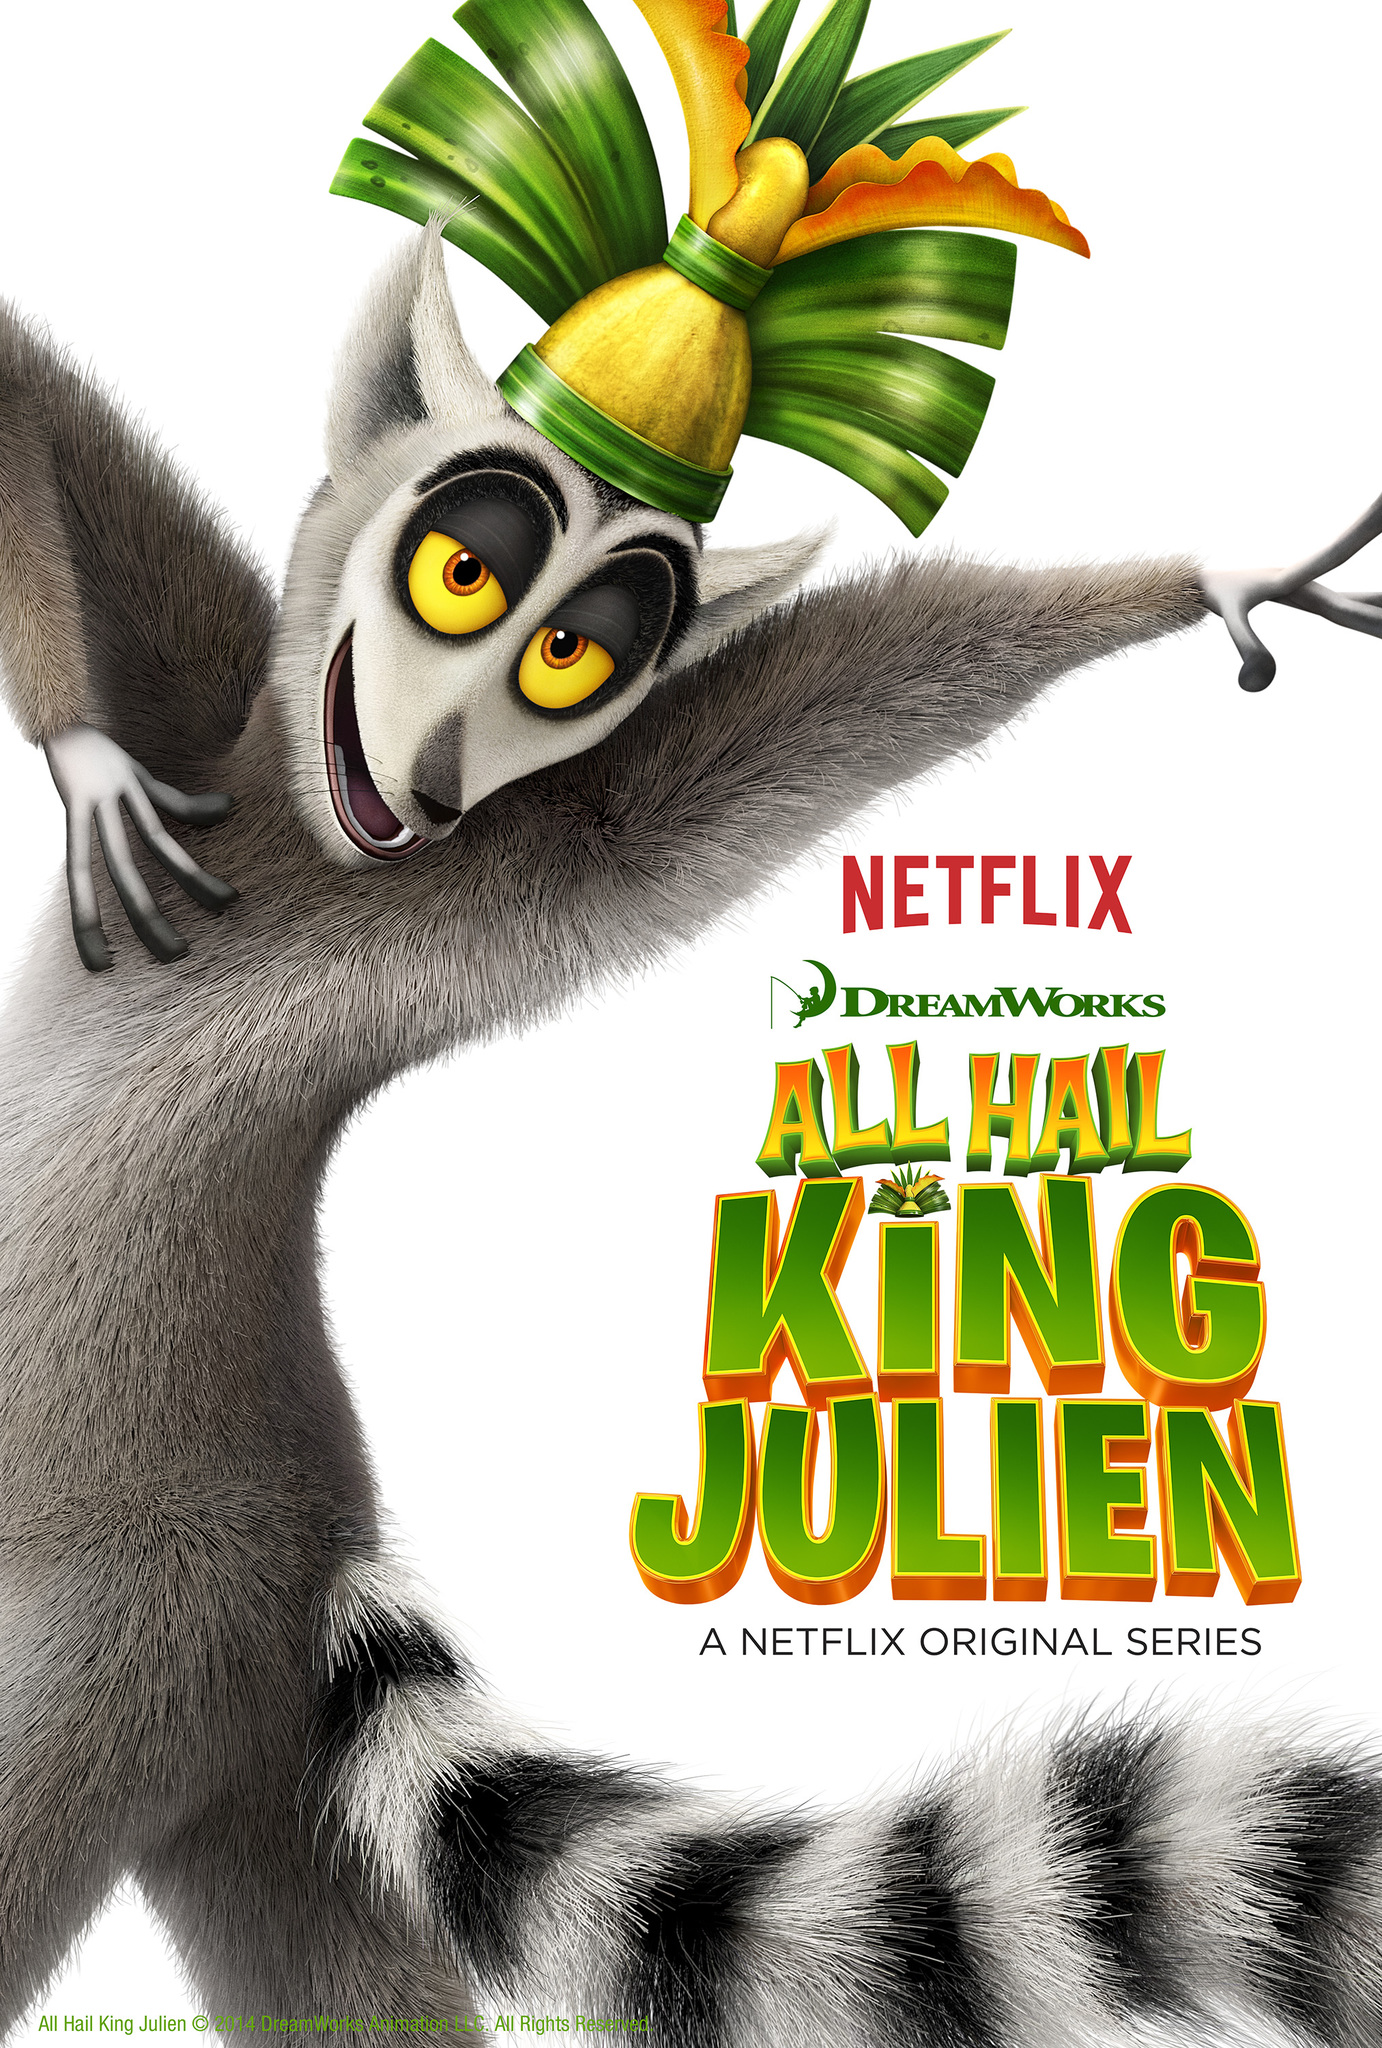 All.Hail.King.Julien.S04E13.DUTCH.1080p.WEB.h264-NLKIDS